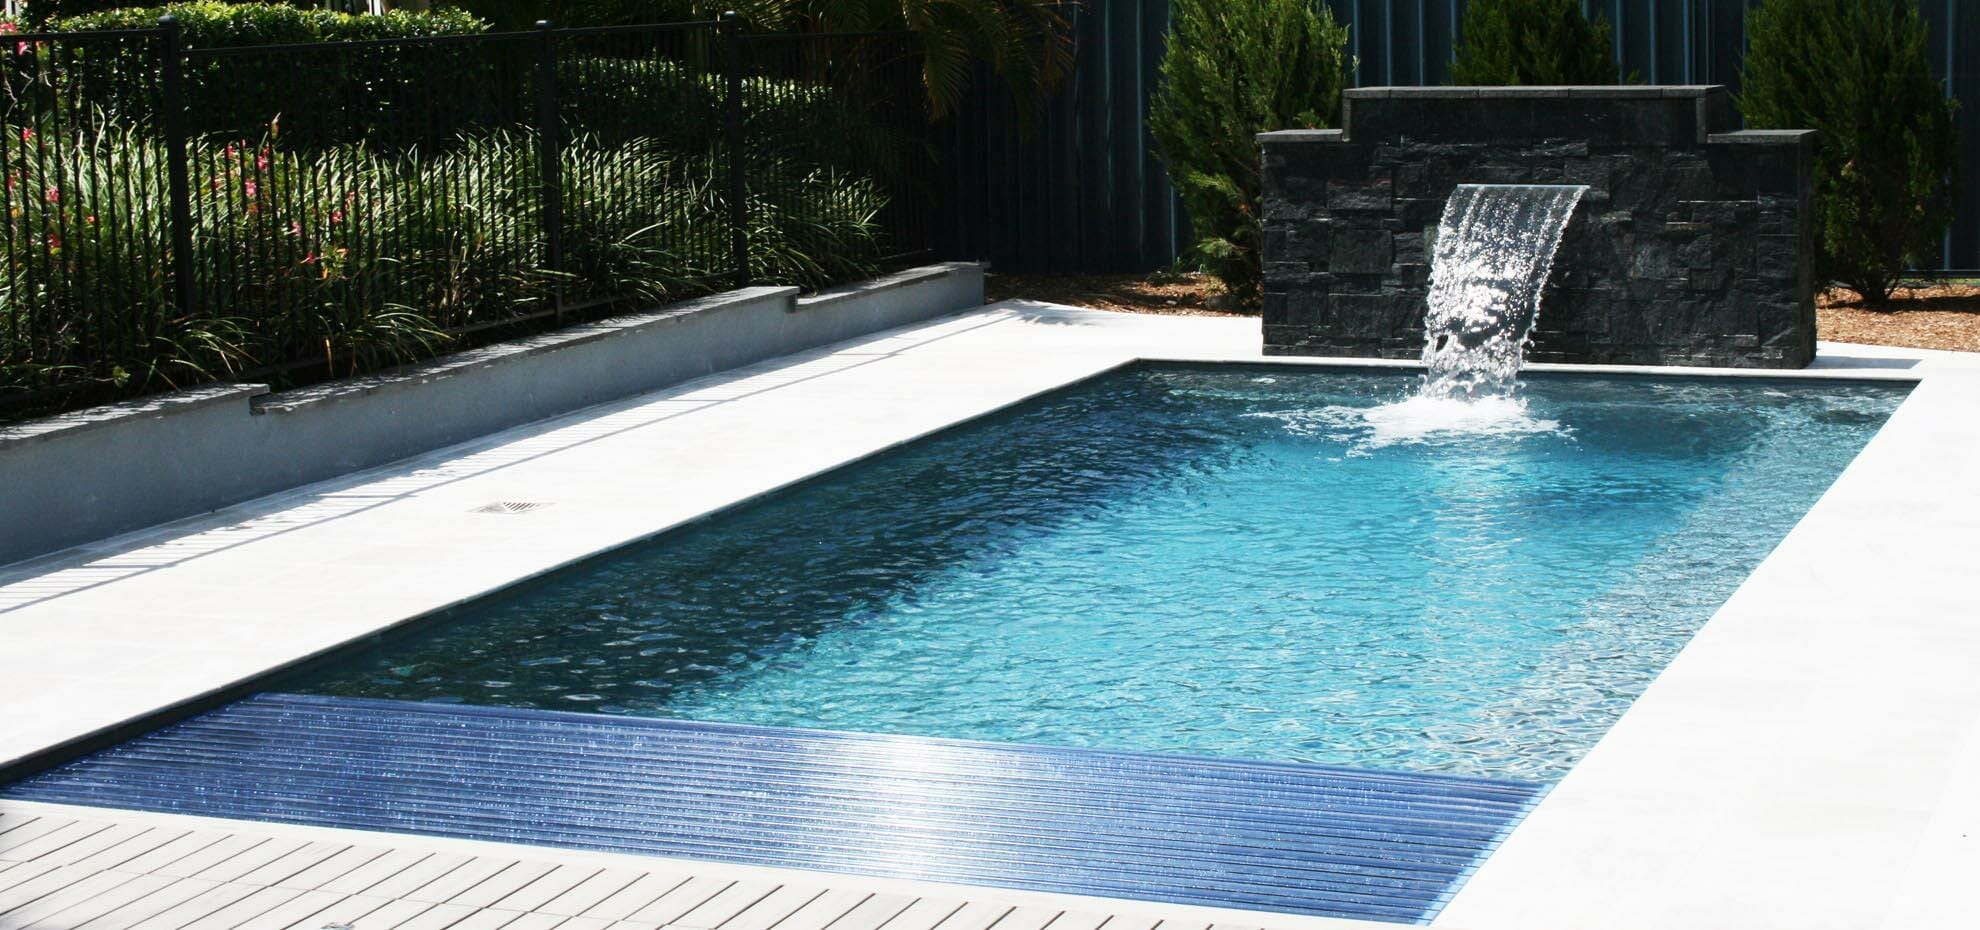 Reflection fibreglass pool with Auto Cover feature, as well as water feature by Leisure Pools